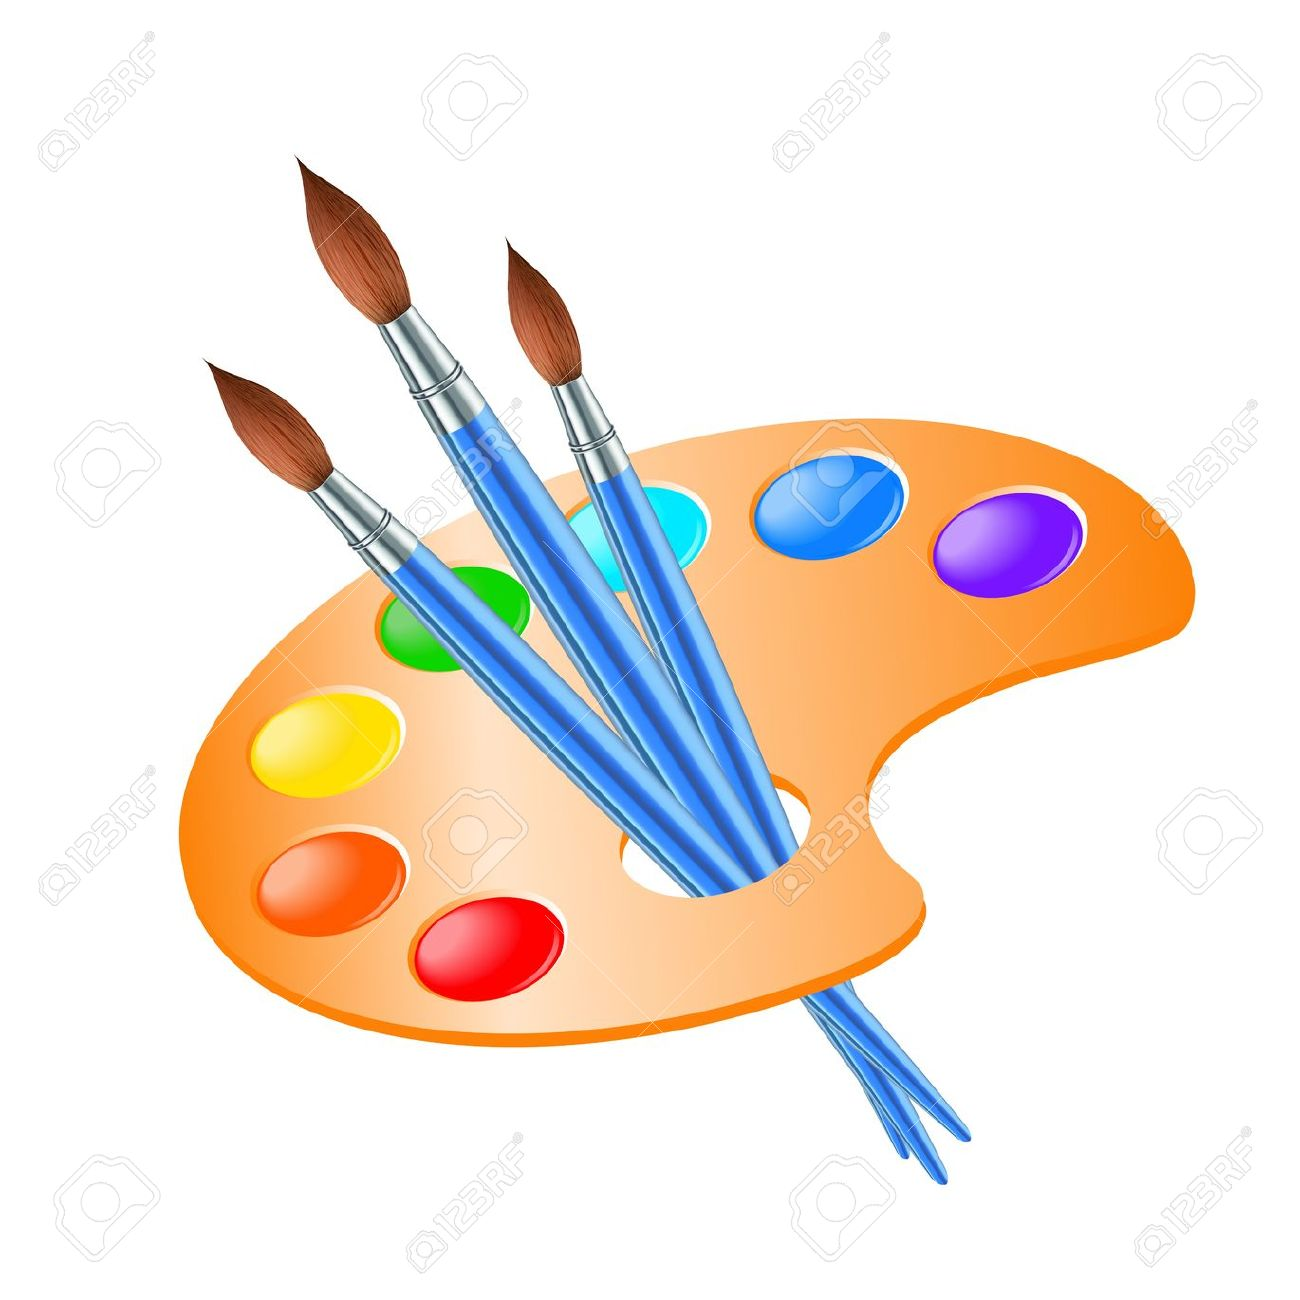 Art Palette With Paint Brush For Drawing Vector Illustration.